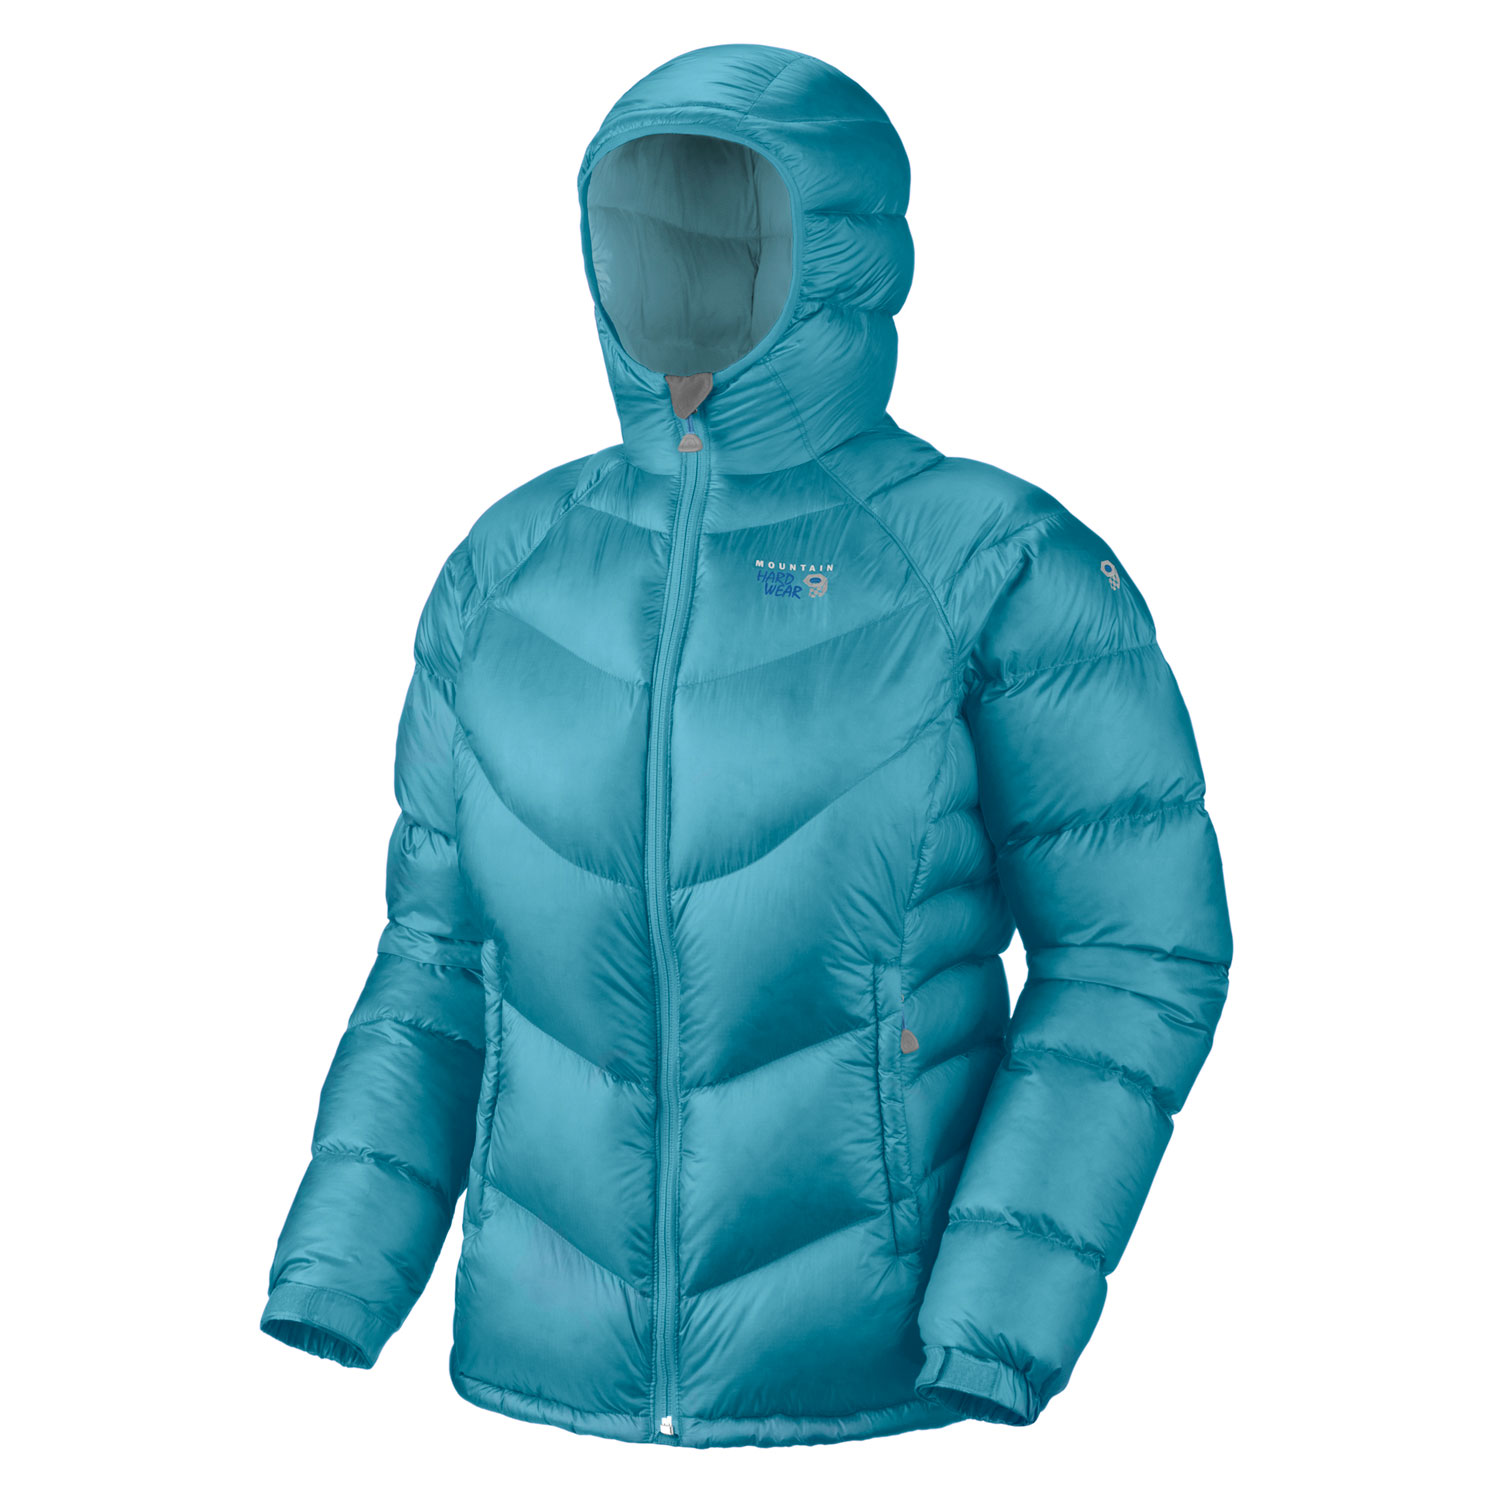 "Key Features of the Mountain Hardwear Kelvinator Down Jacket: Avg. weight: 16oz; 446g Center back length: 27"" Fabric: body: 20D Rip (100% nylon) insulation: 650-Fill Goose Down Two front handwarmer pockets Dual hem drawcords seal in warmth Full elastic cuffs slide easily over layers to seal in warmth Low profile, insulated hood Micro-Chamois - lined chin guard prevents zipper chafe Stuff sack included - $182.95"